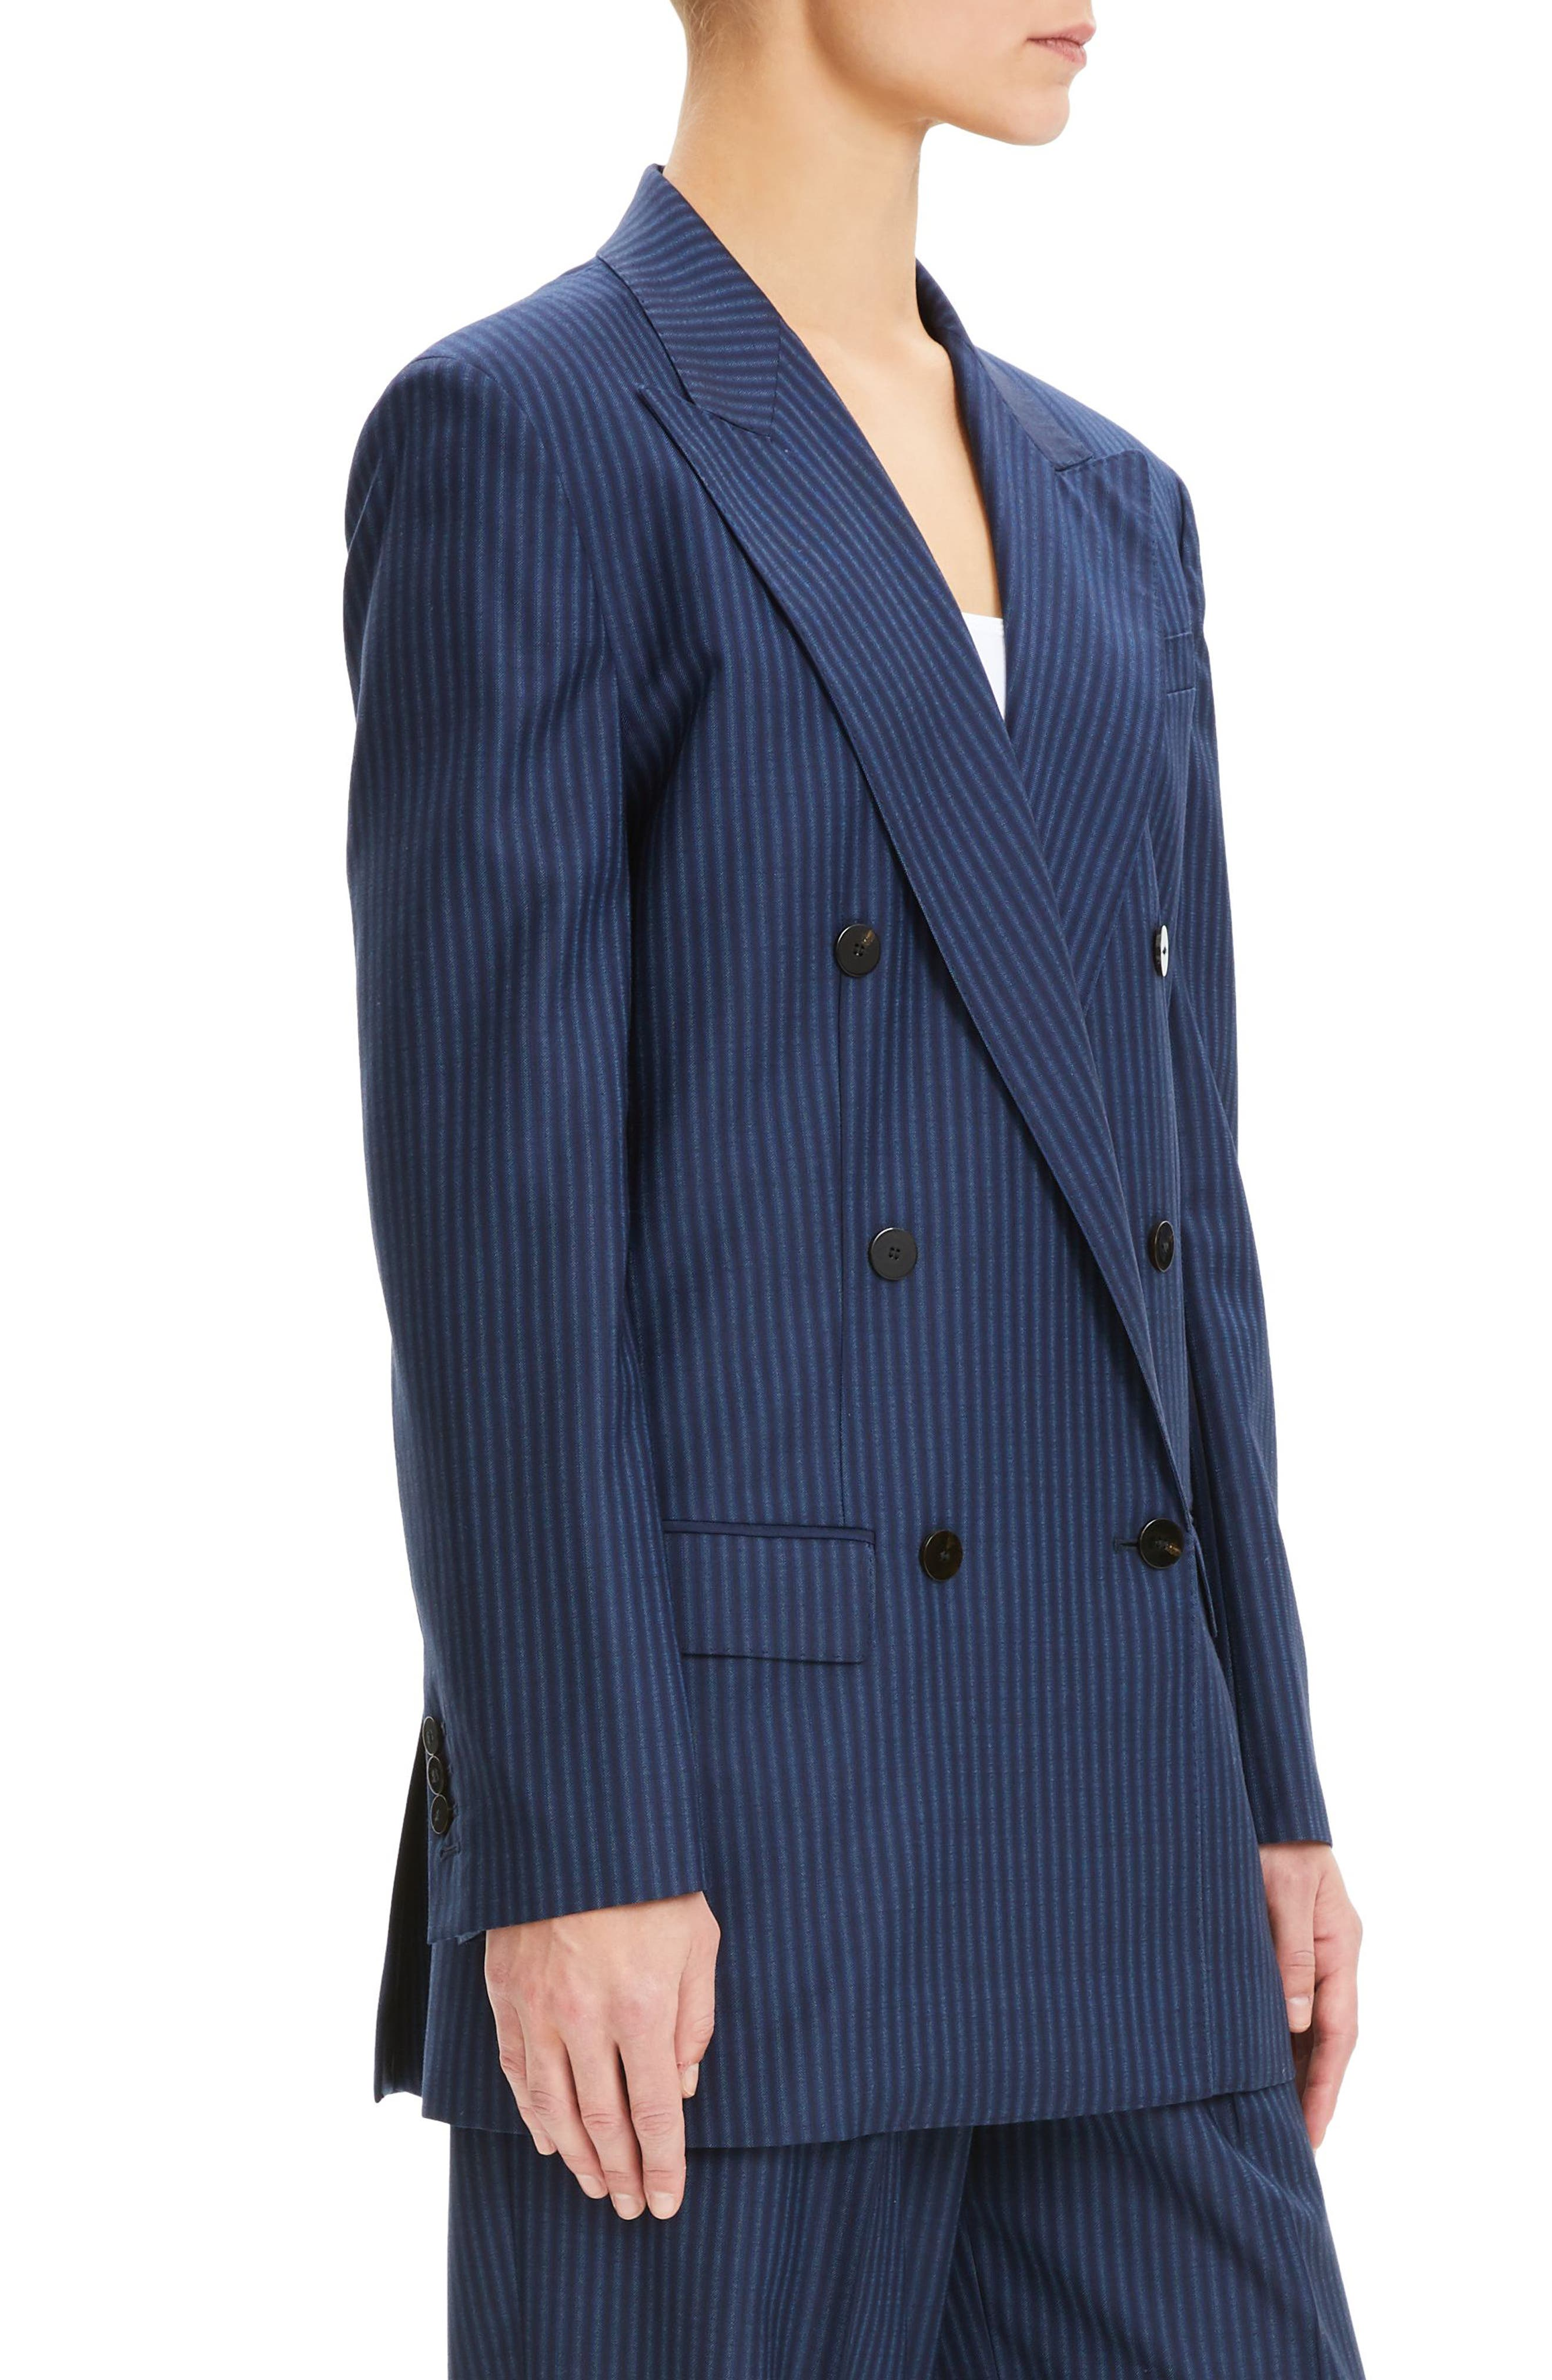 THEORY,                             Pale Stripe Double Breasted Wool Jacket,                             Alternate thumbnail 3, color,                             NAVY SAPPHIRE STRIPE